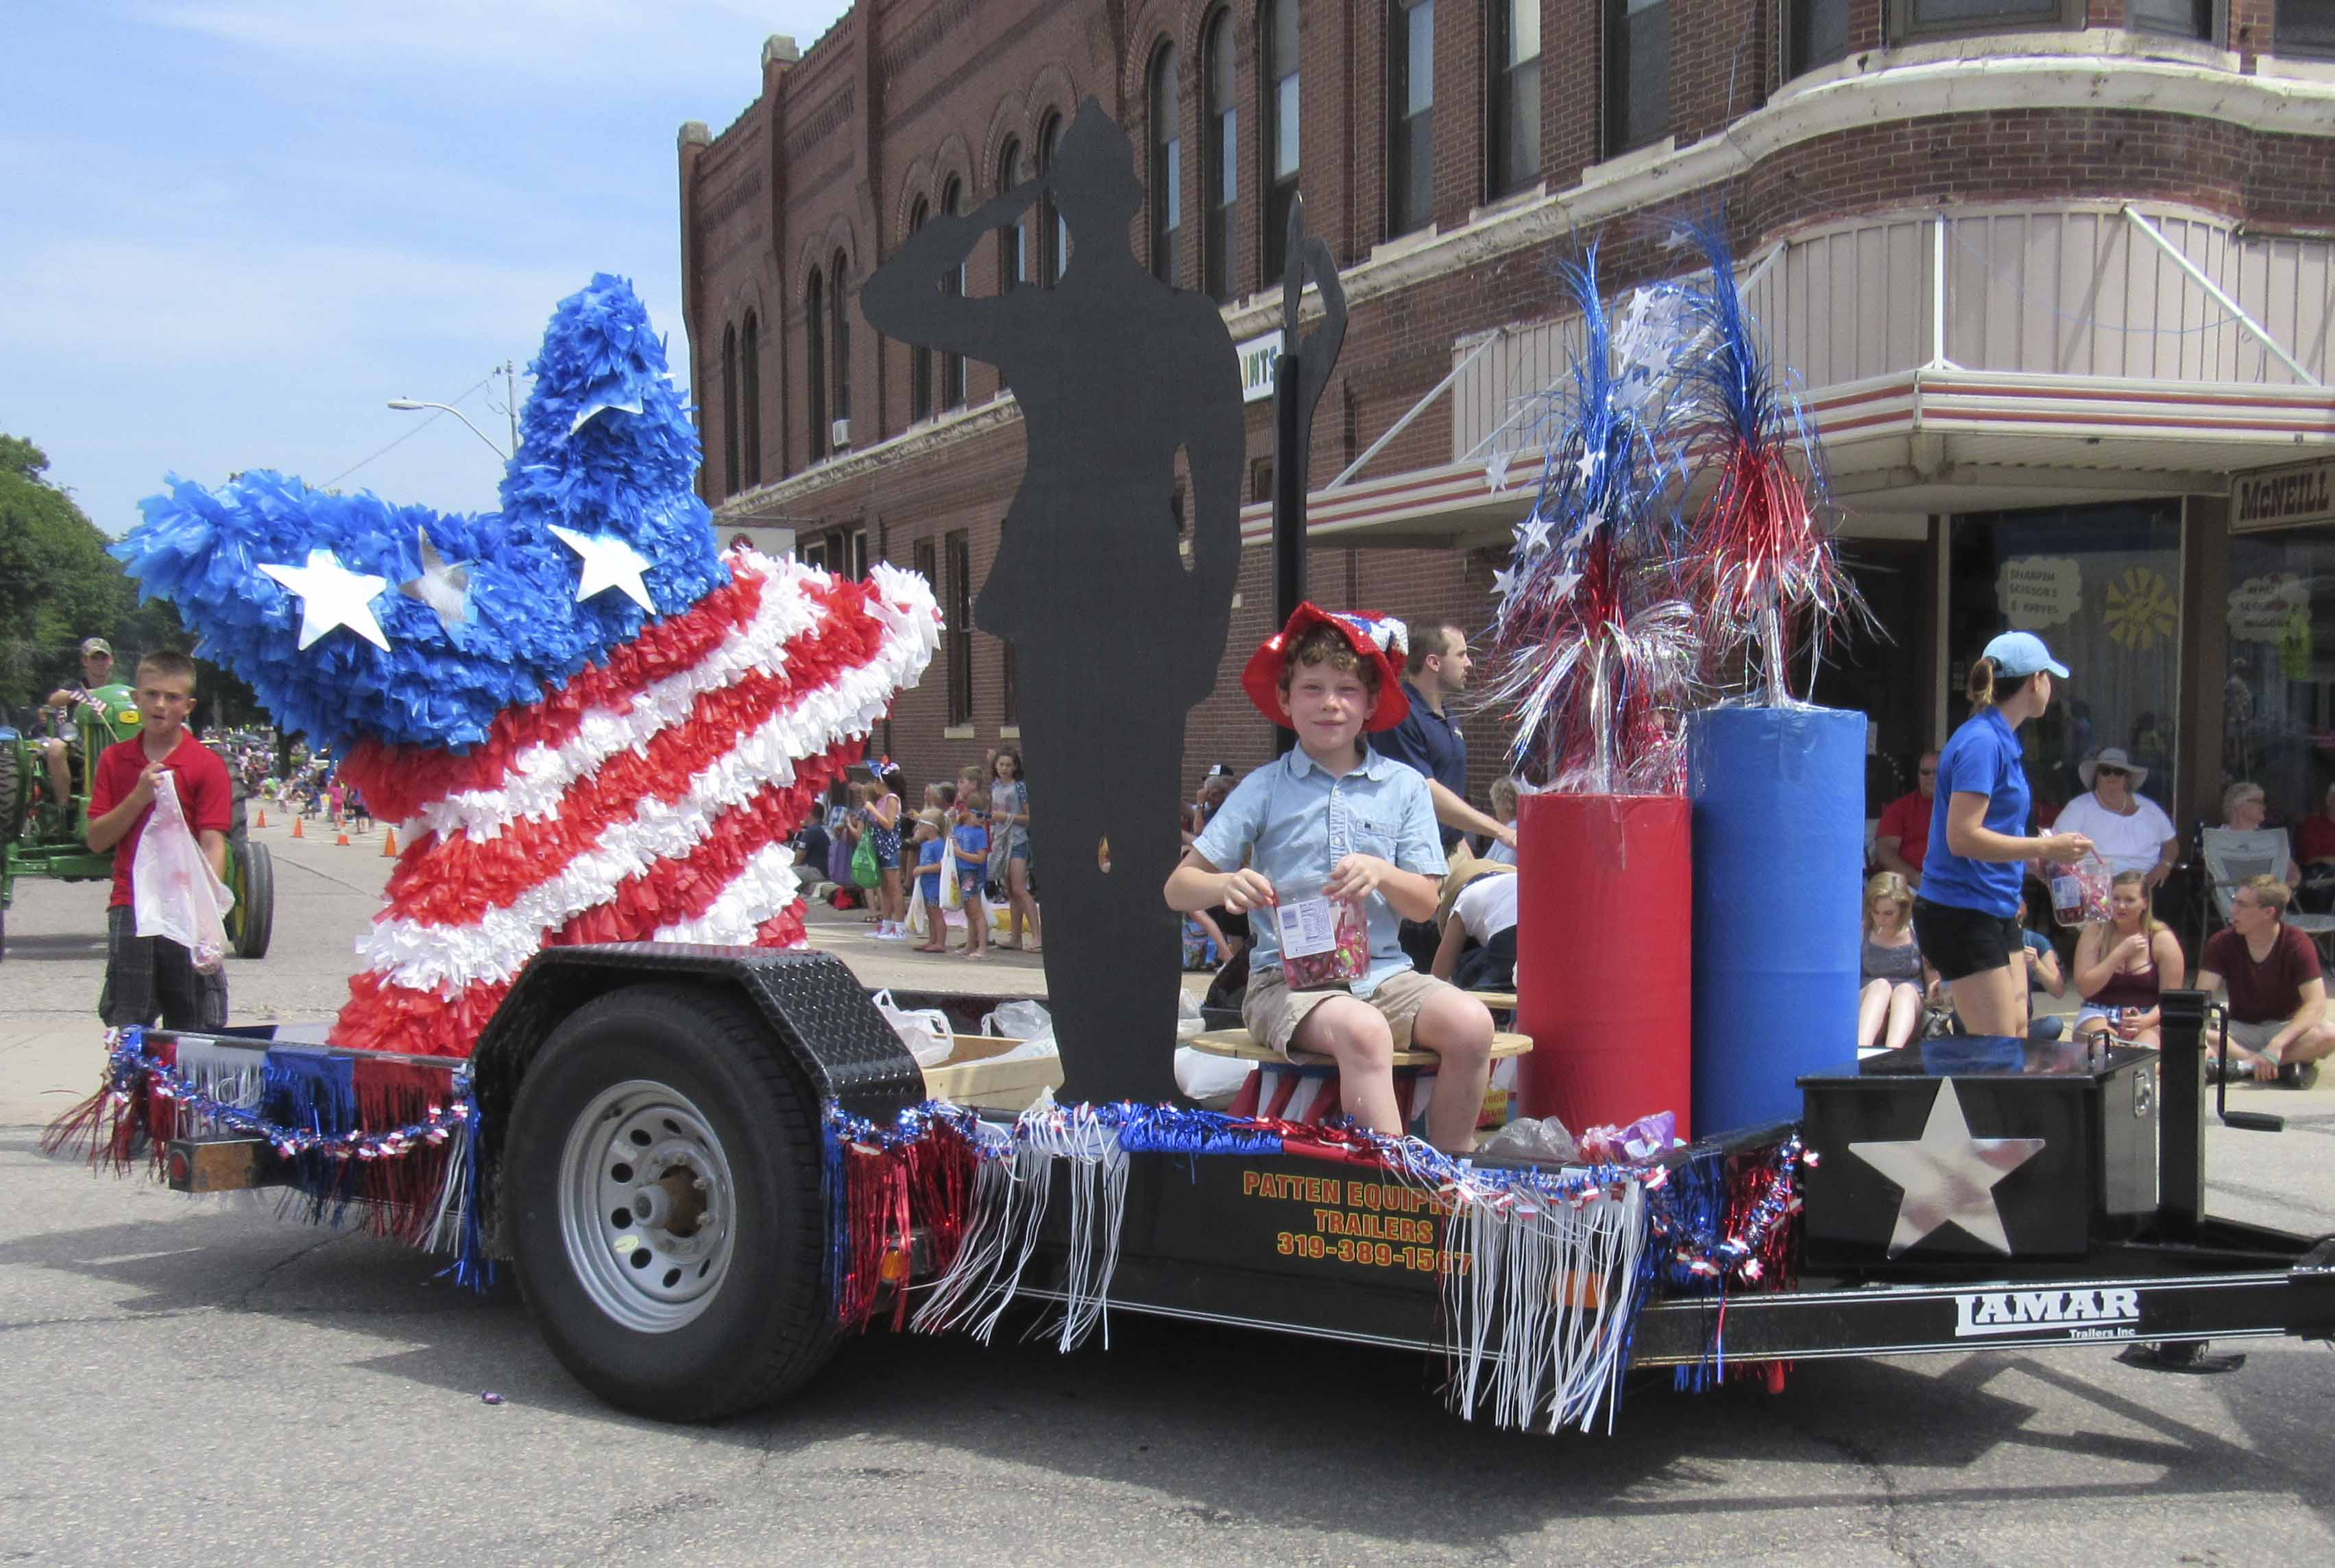 ITS (Infrastructure Technology Solutions) won first place in the Monticello parade. Aedan Althoff, son of ITS owners Leslie and Joel Althoff, throws out candy on the float. (Photo by Kim Brooks)